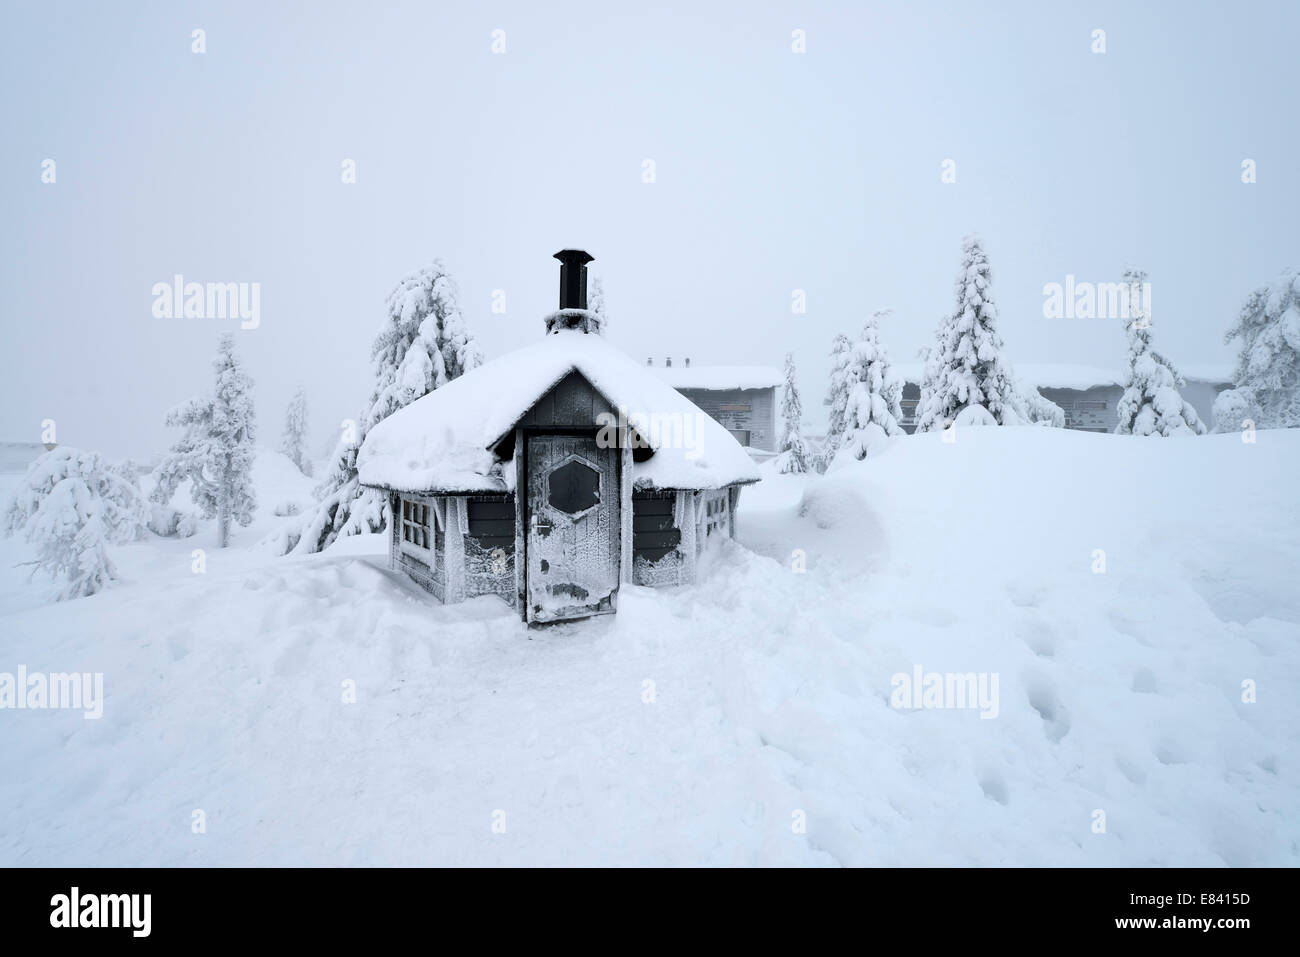 Finnish Kota in a snow-covered landscape, Iso Syöte, Lapland, Finland - Stock Image